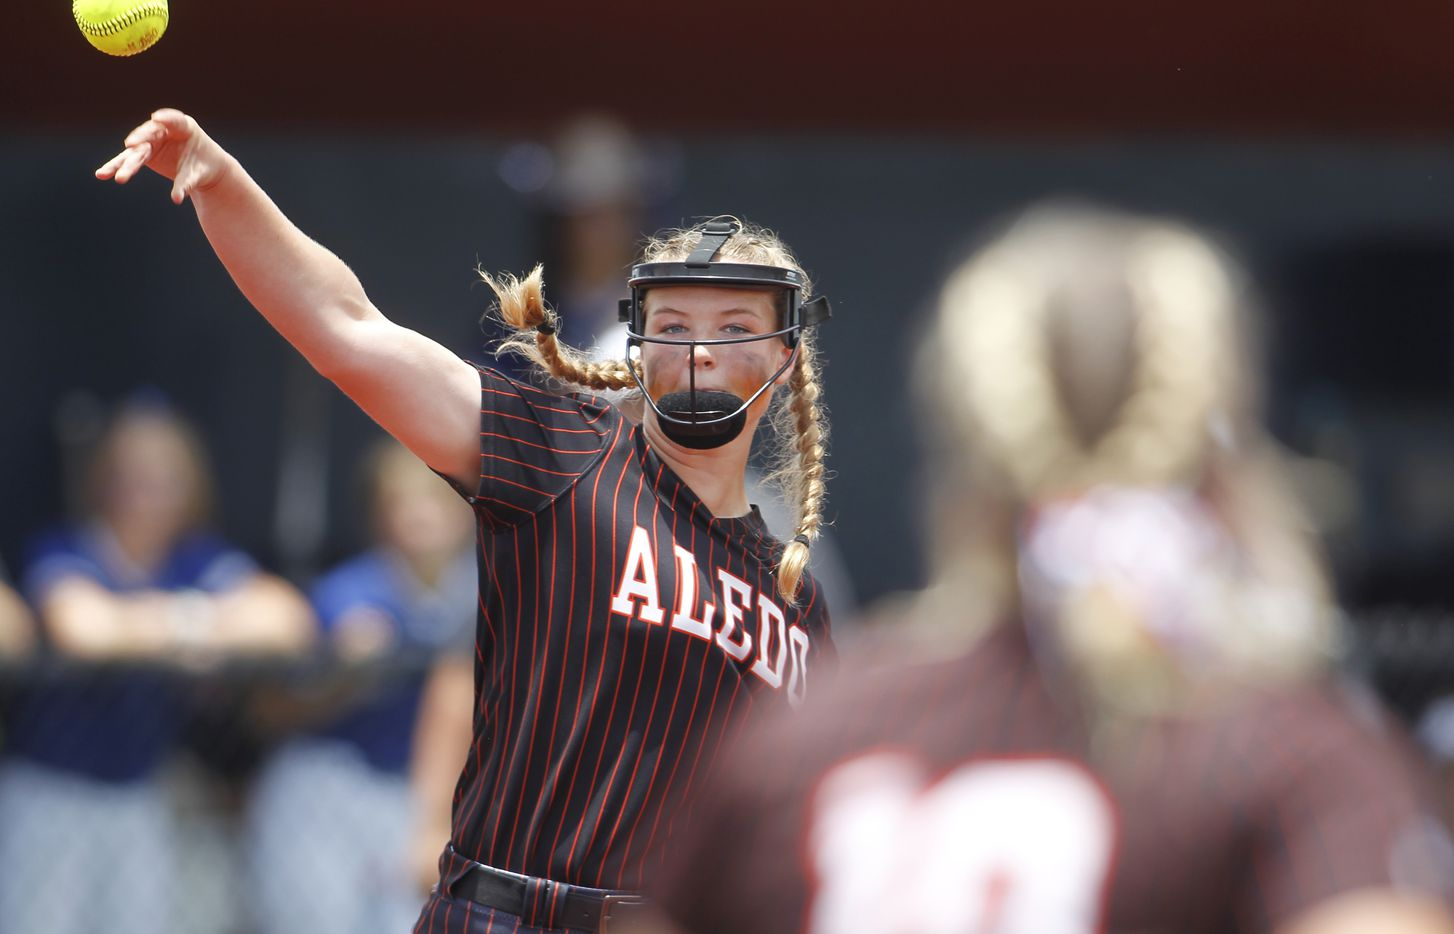 Aledo pitcher Kayleigh Smith (15) throws out a Georgetown batter after fielding a grounder to the mound during the bottom of the first inning of play. The two teams played their UIL 5A state softball semifinal game at Leander Glenn High School in Leander on June 4, 2021. (Steve Hamm/ Special Contributor)